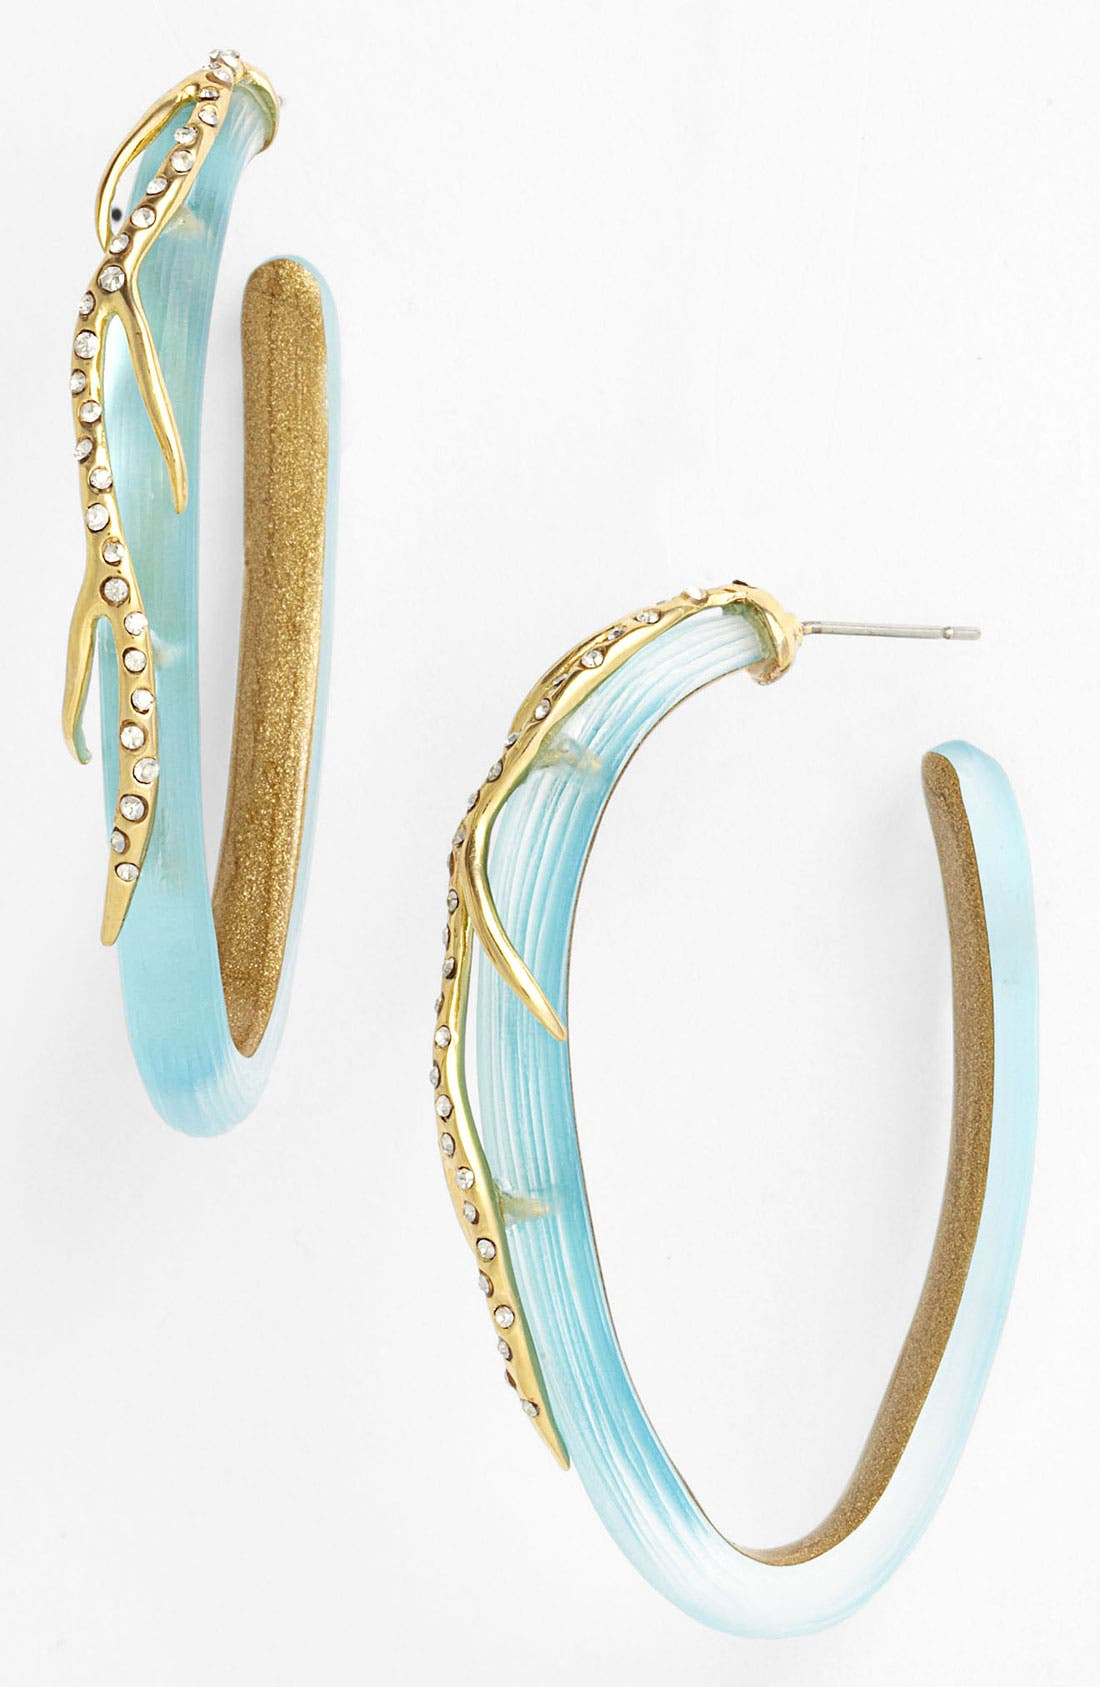 Main Image - Alexis Bittar 'Ophelia' Vine Hoop Earrings